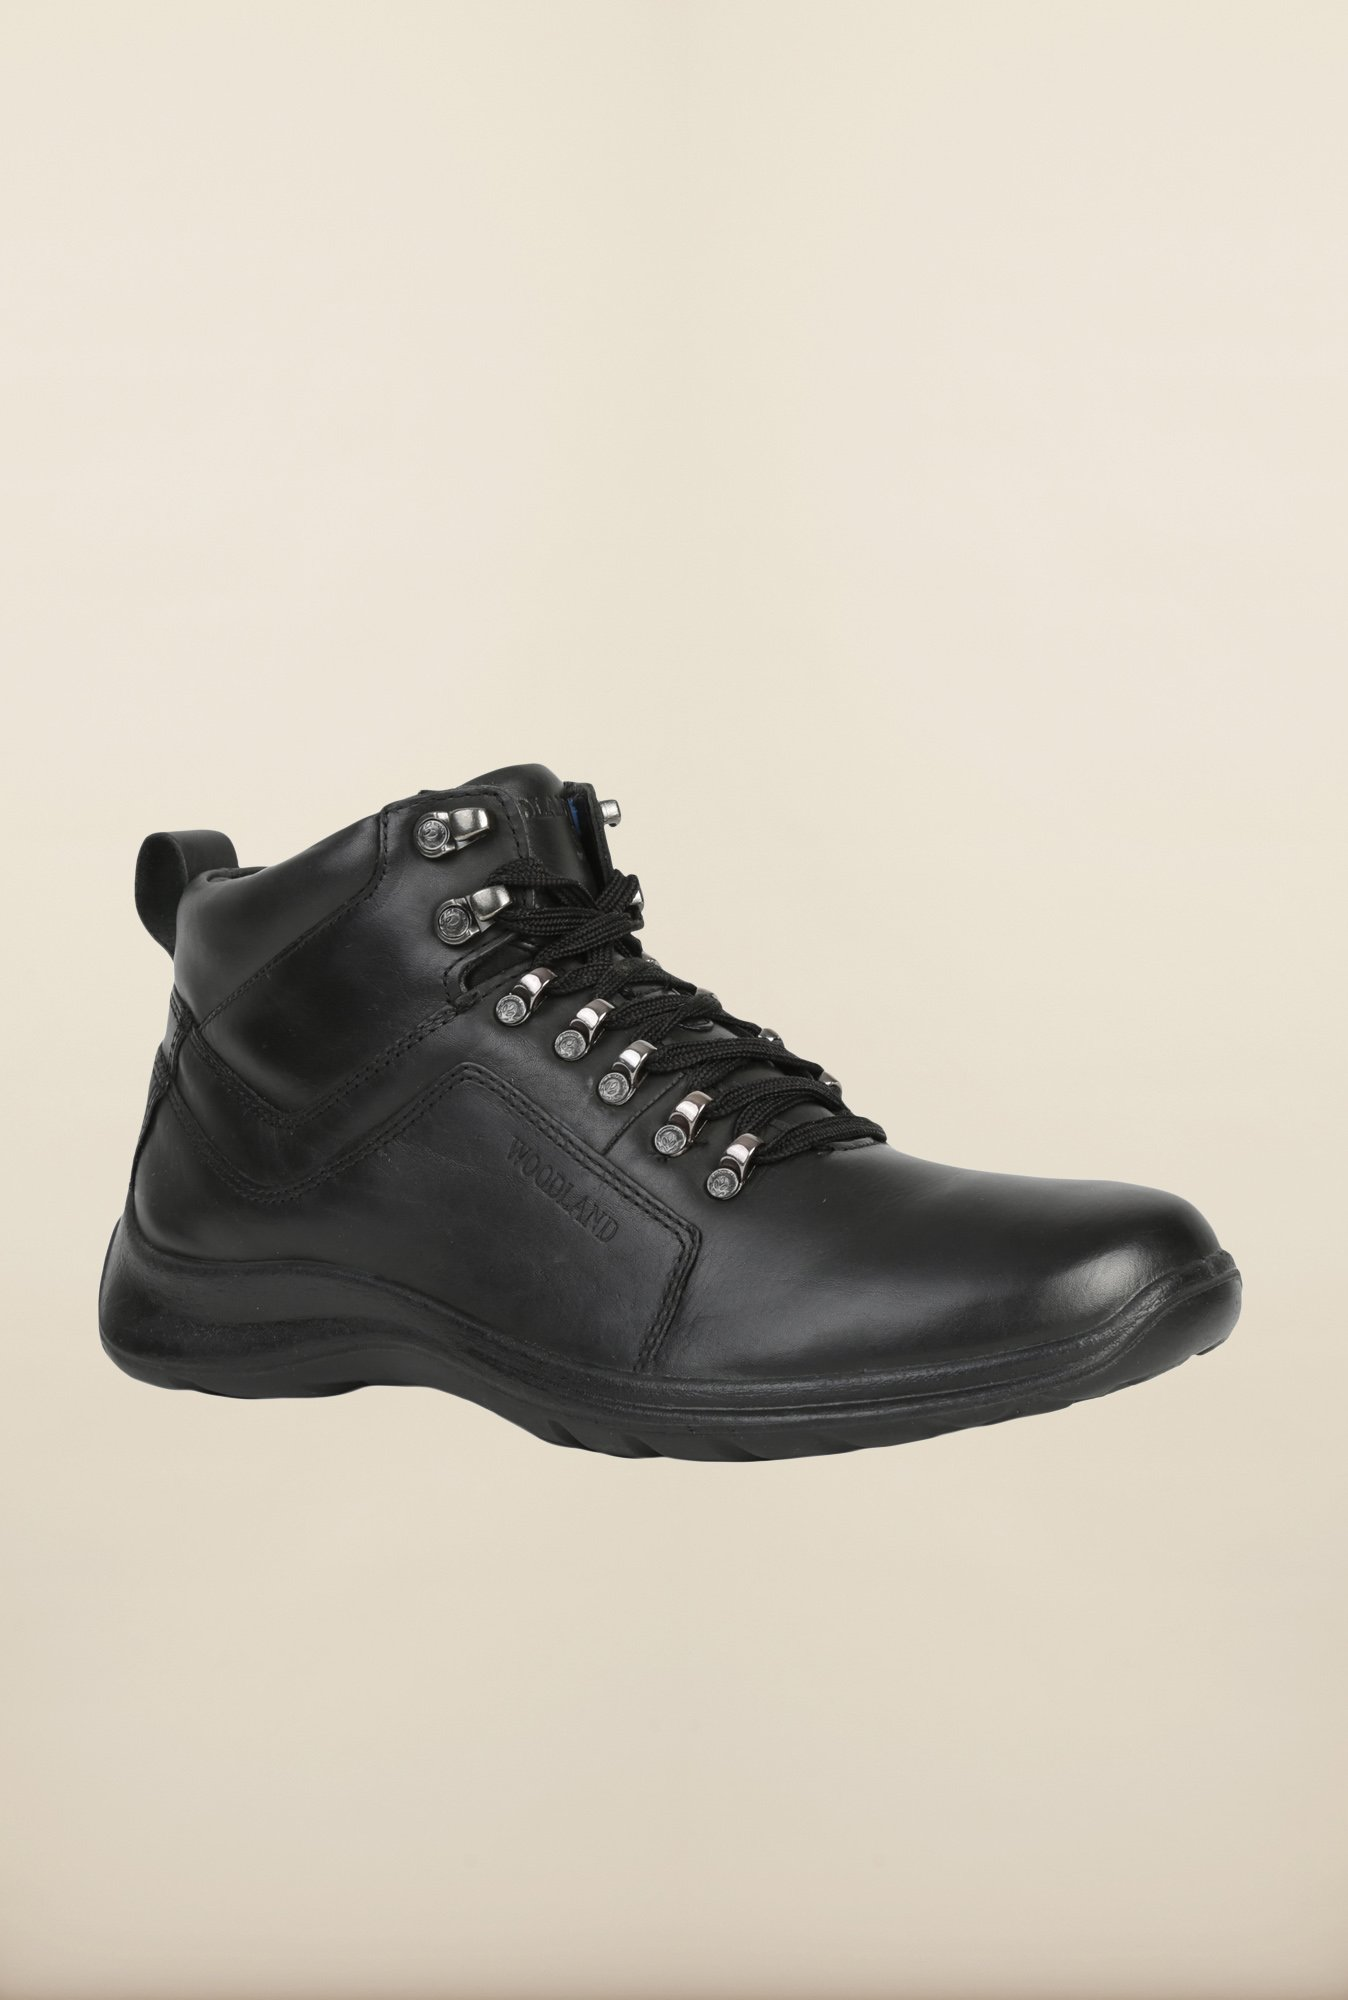 Woodland Black Casual Boots